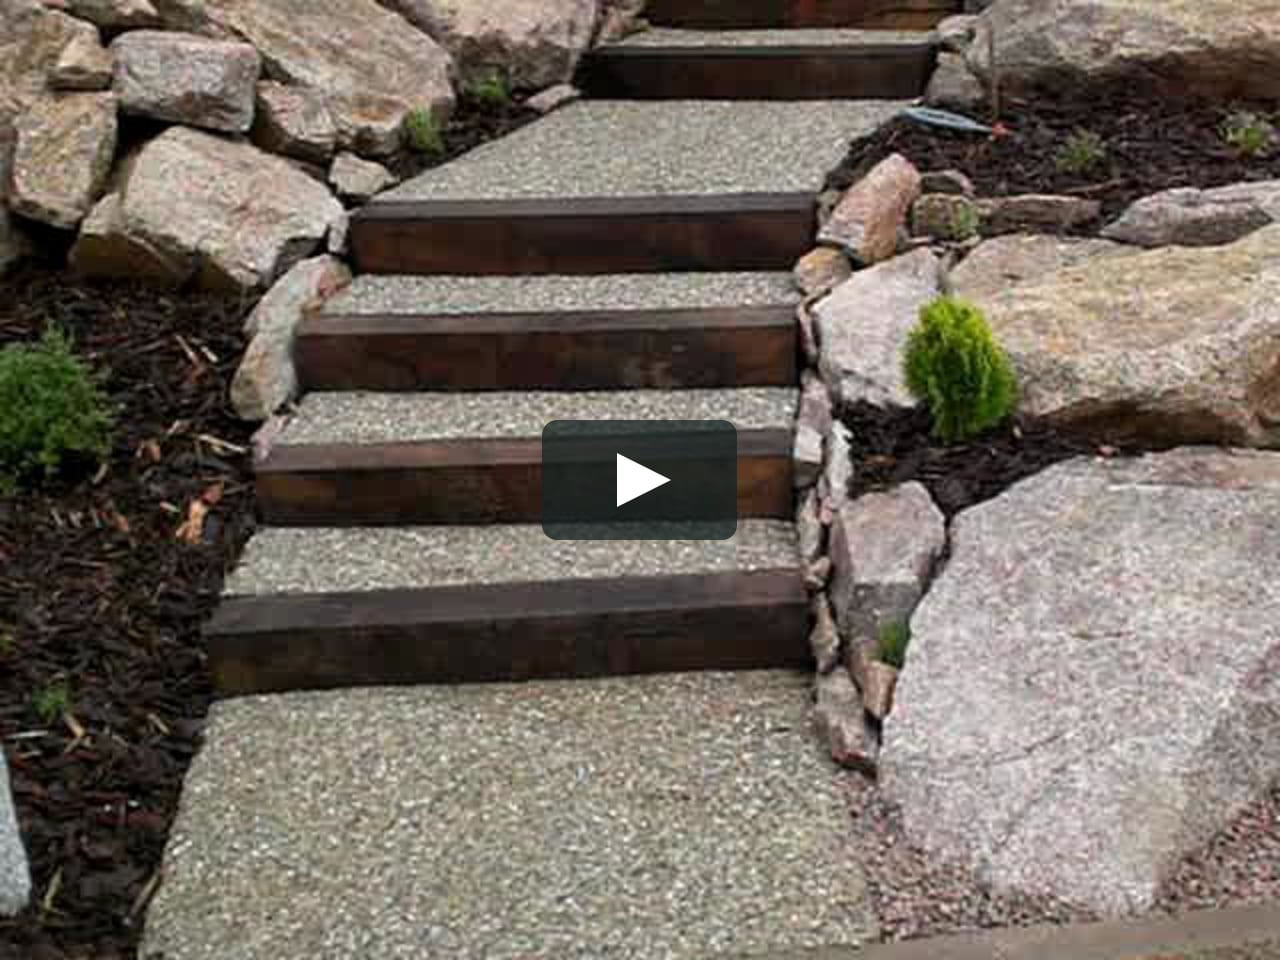 Escalier paysager on vimeo for Escalier paysager